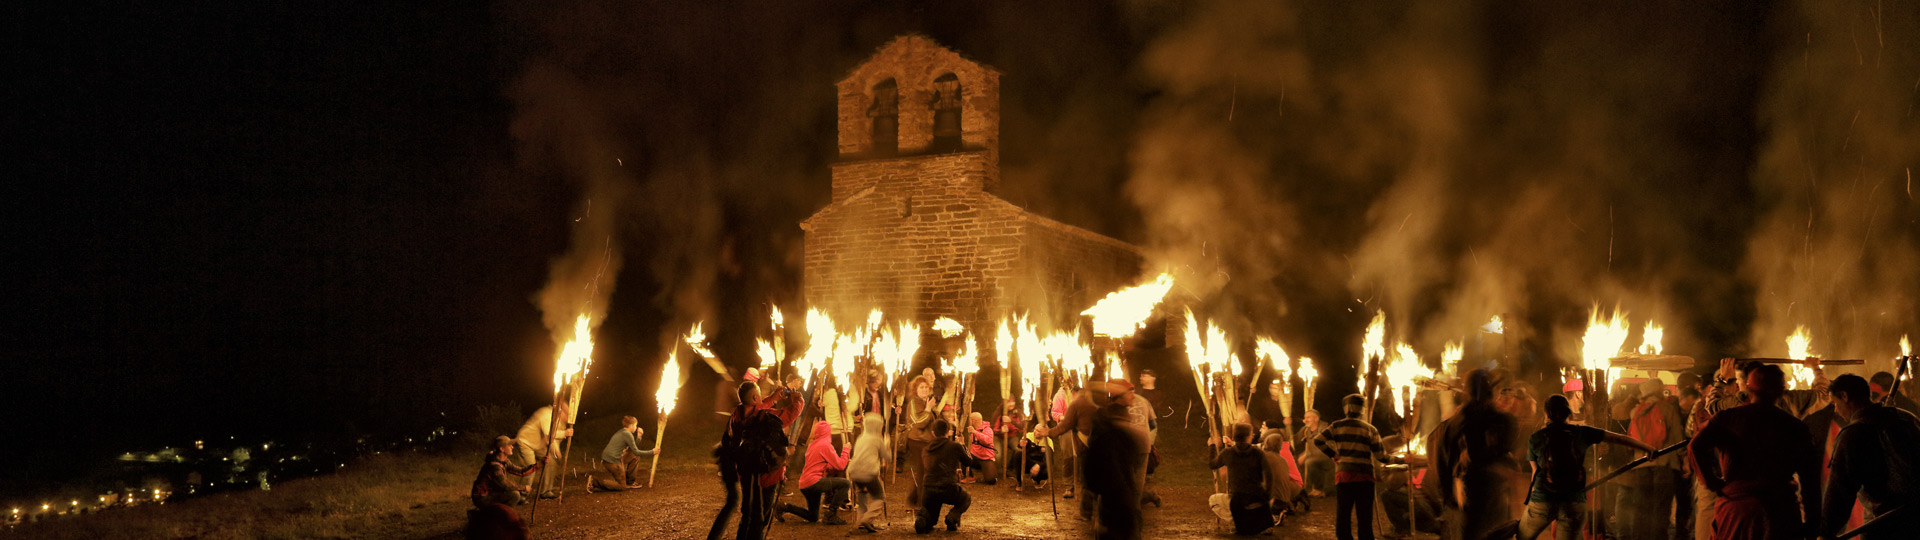 Summer solstice festivals in the Pyrenees.